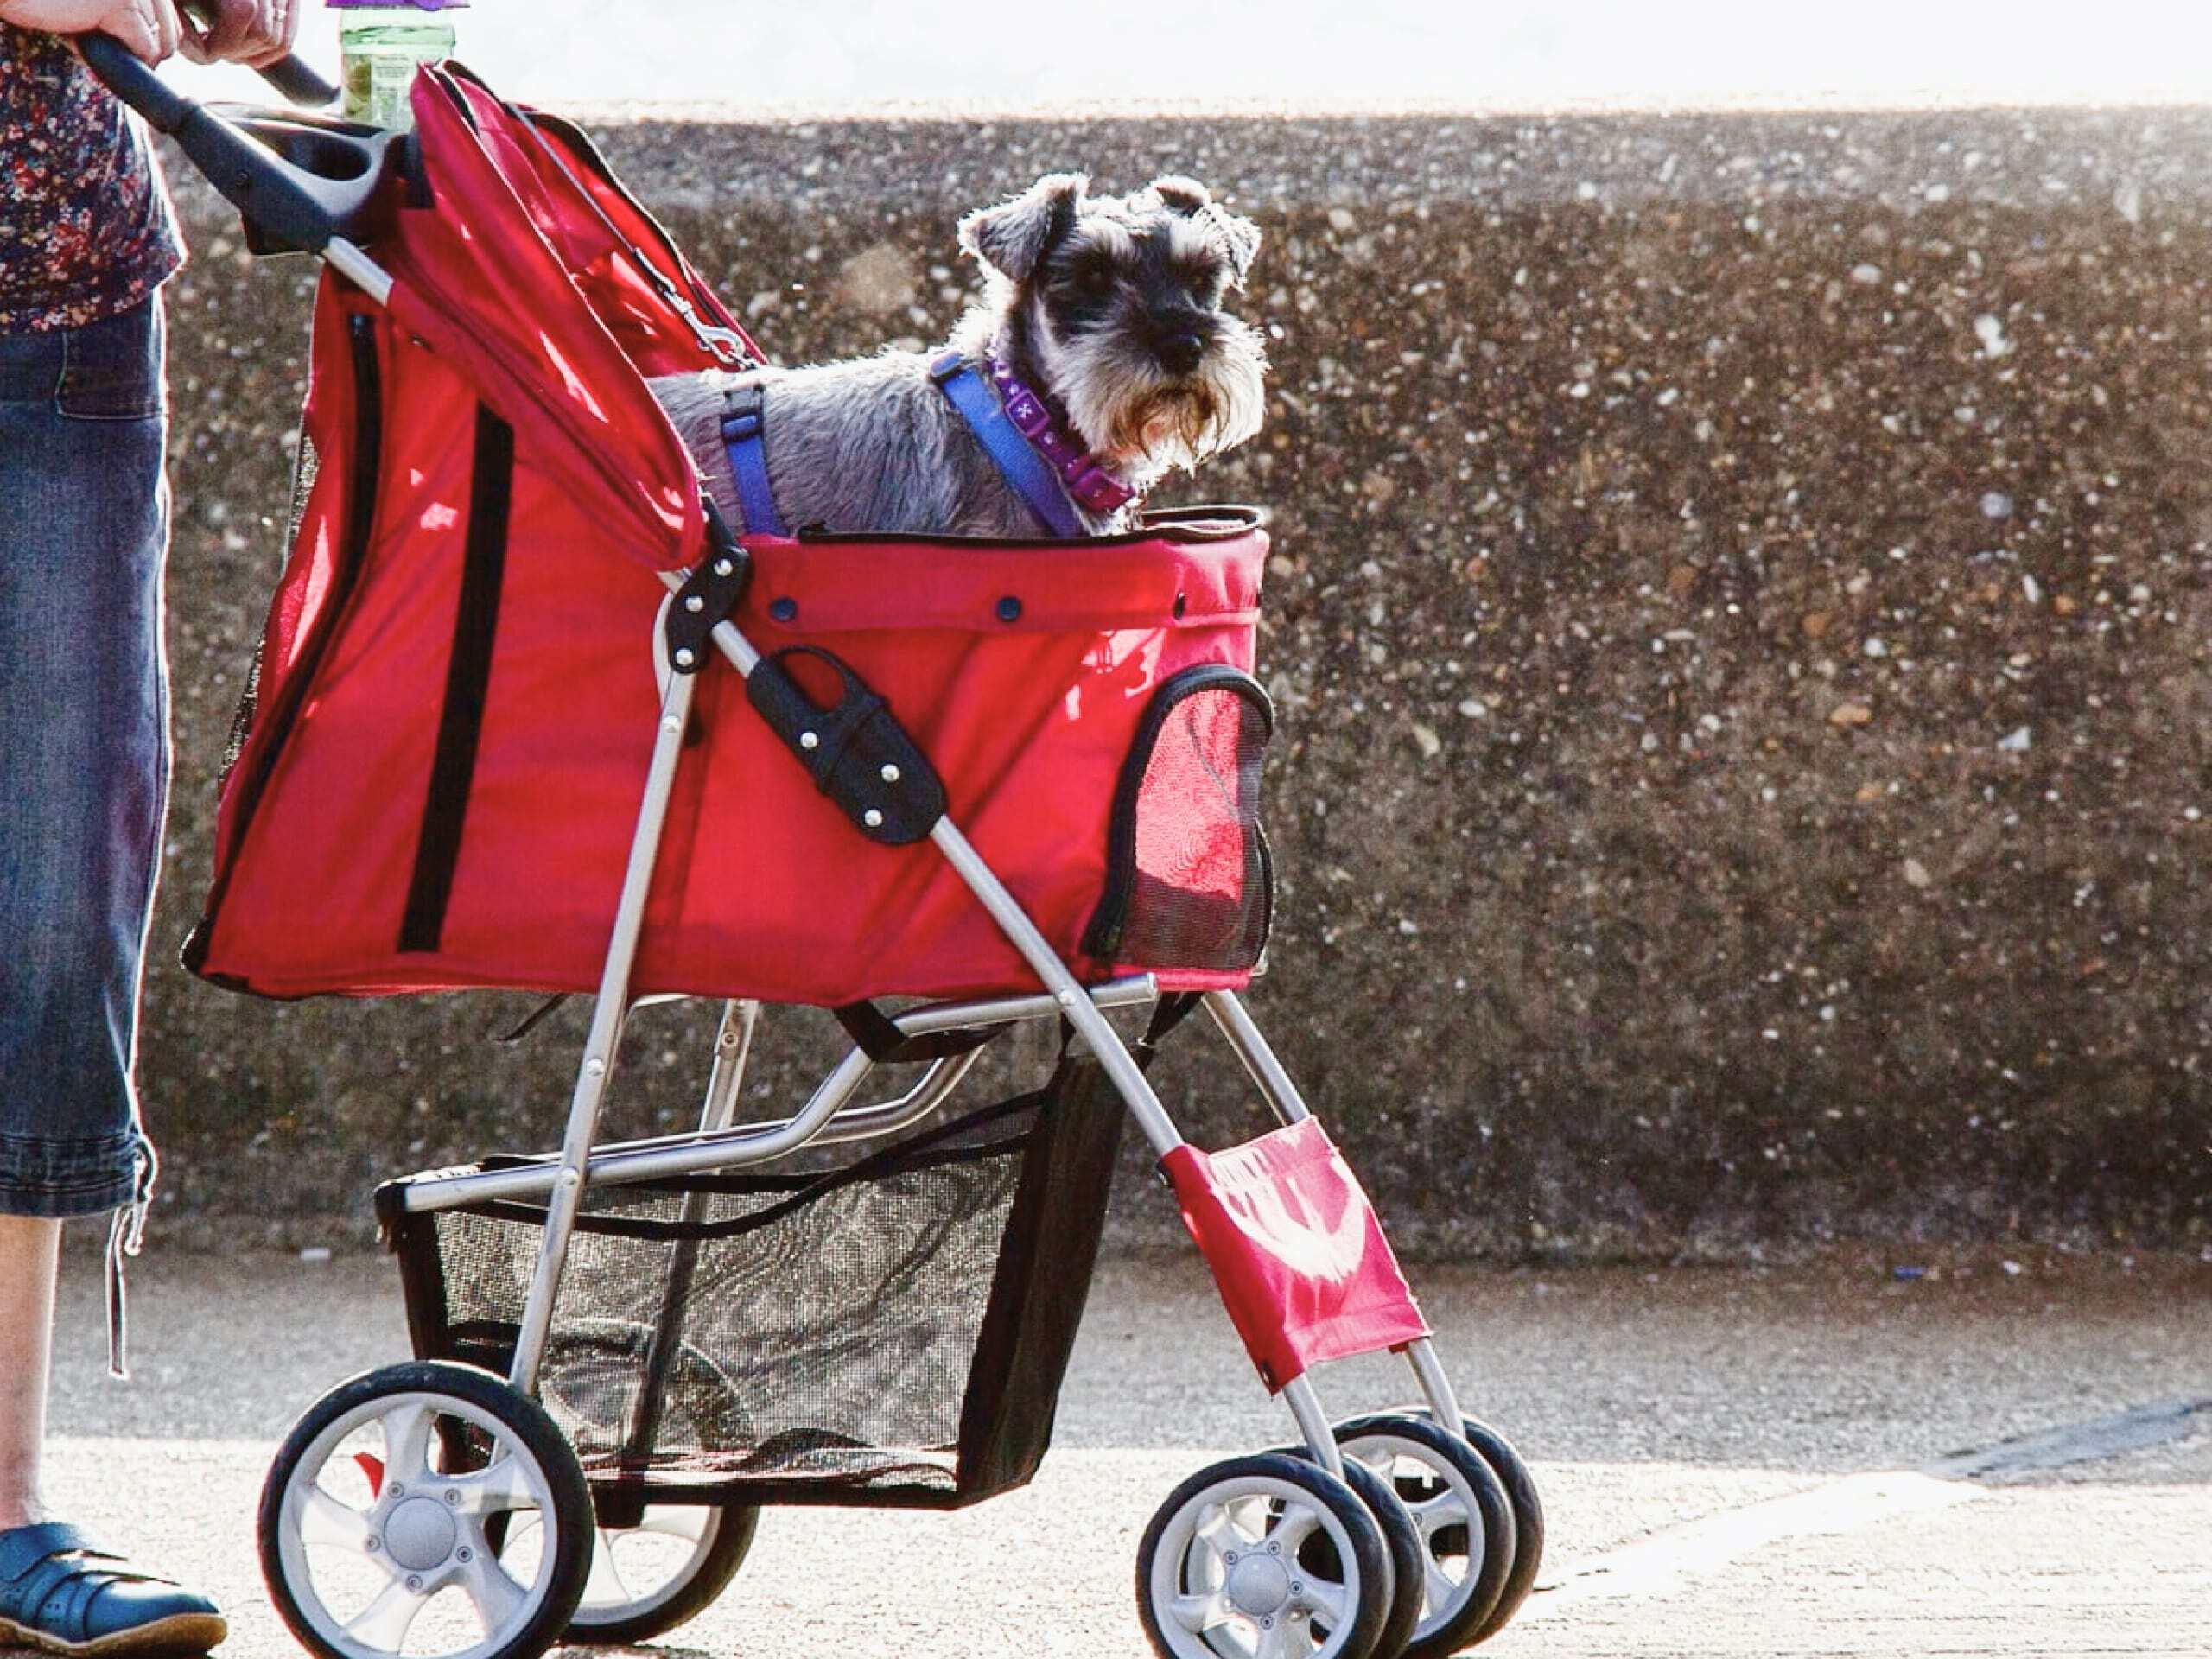 Dog sitting in a red stroller looking at the camera.